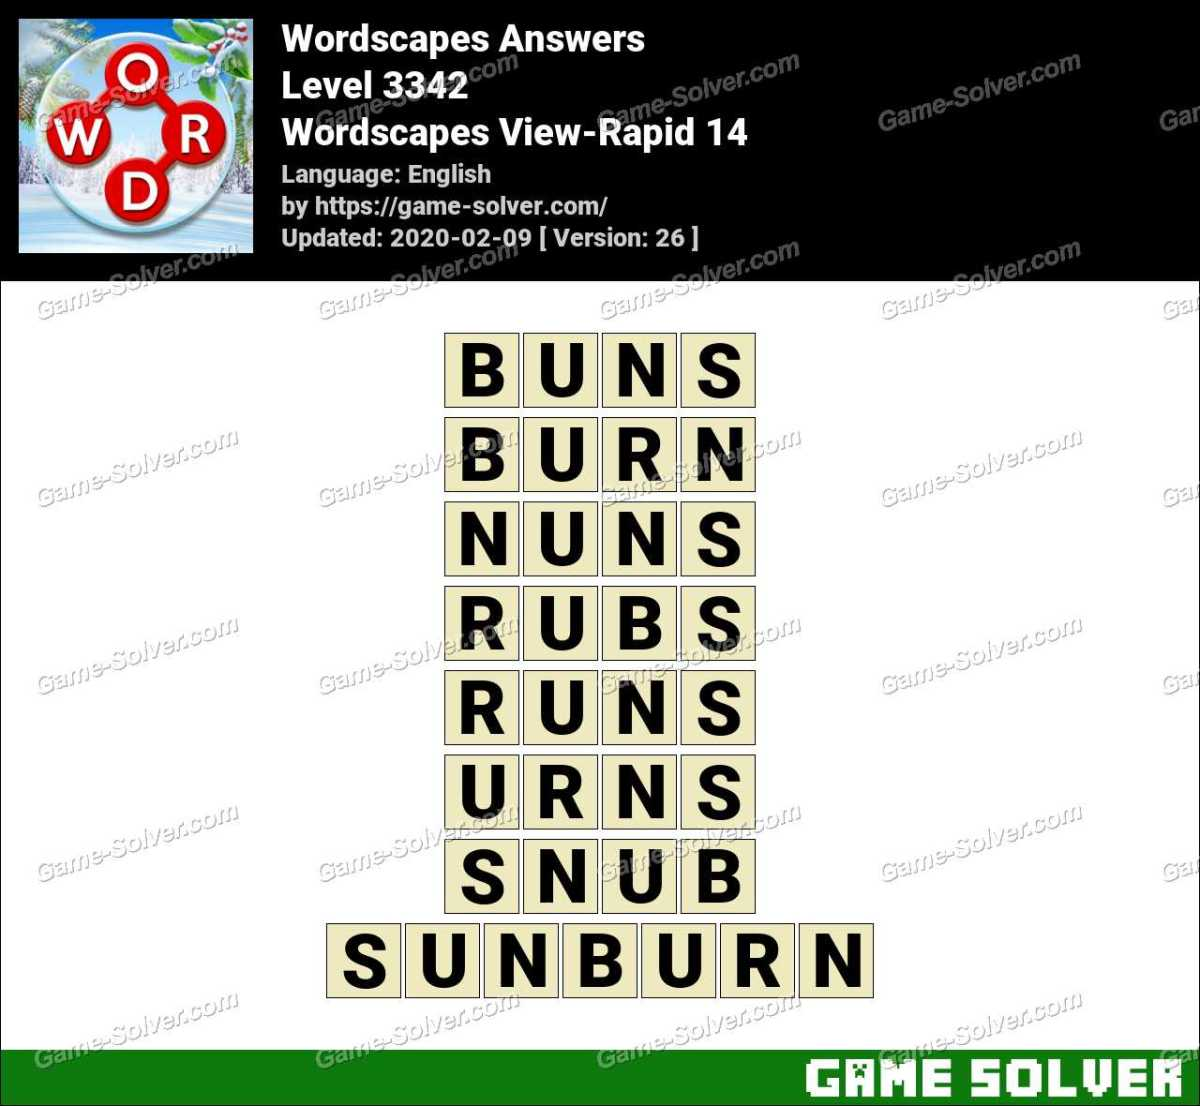 Wordscapes View-Rapid 14 Answers